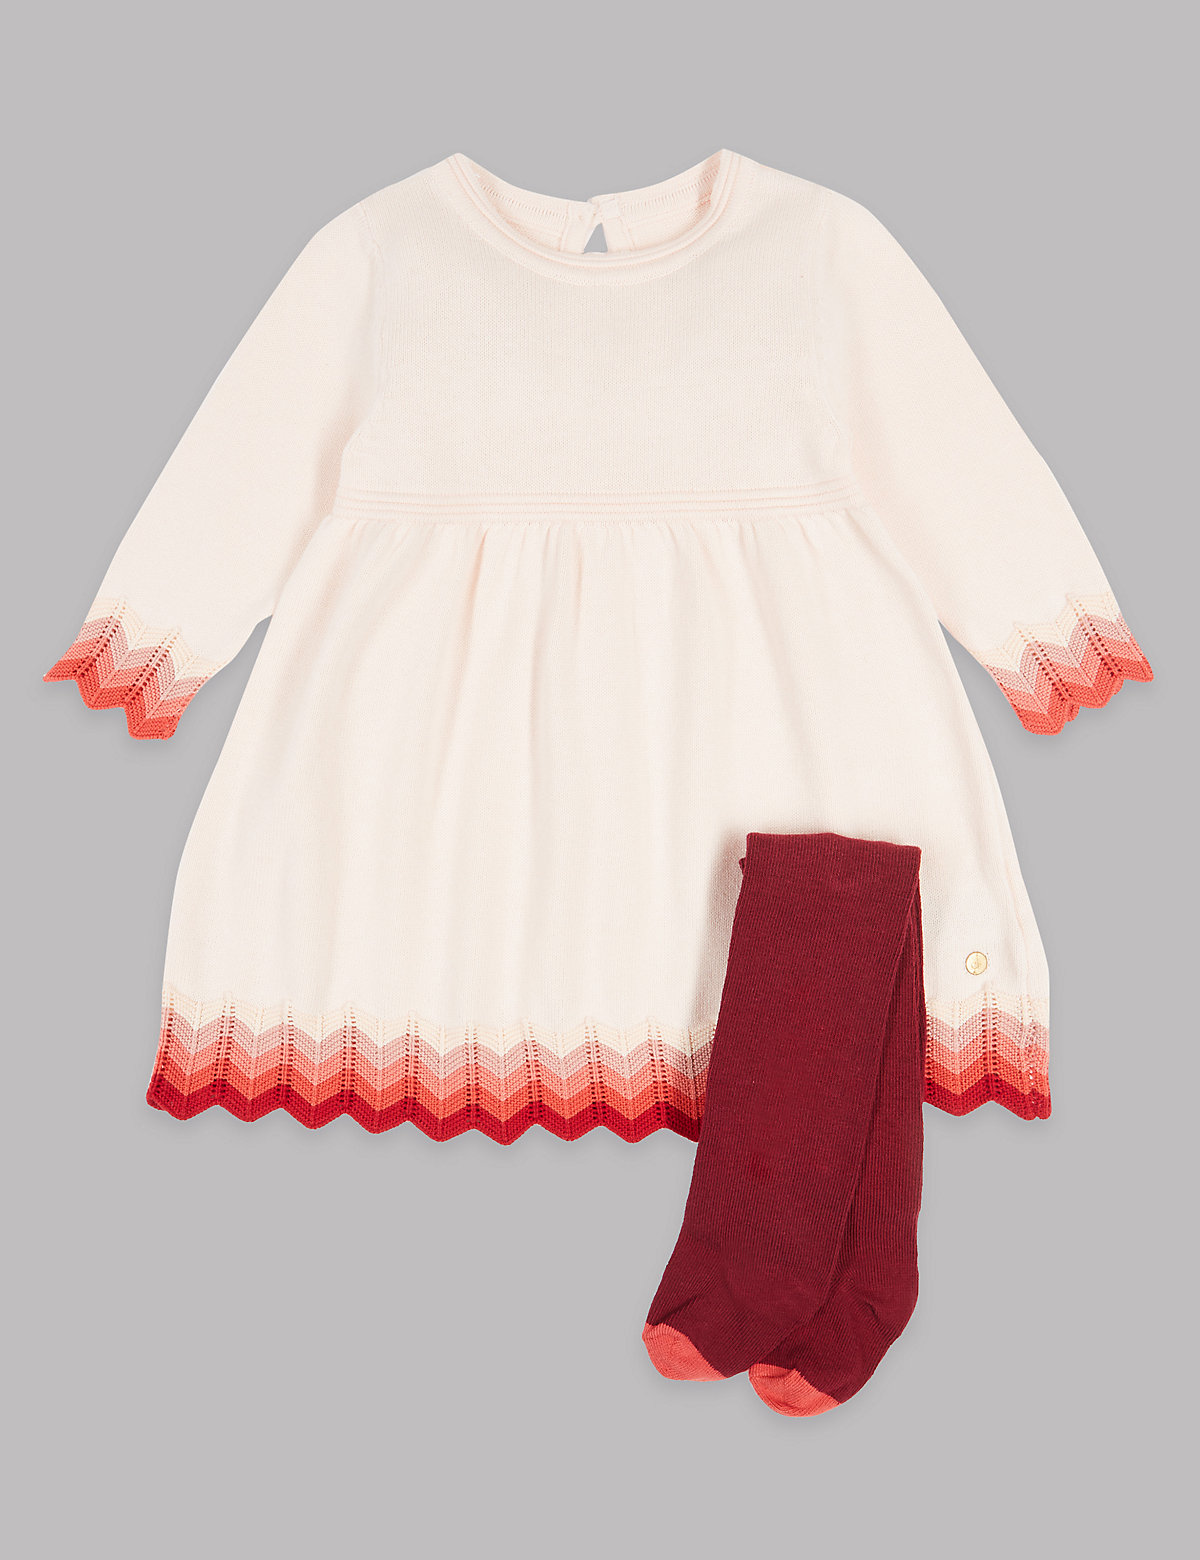 Autograph 2 Piece Intarsia Knitted Dress with Tights